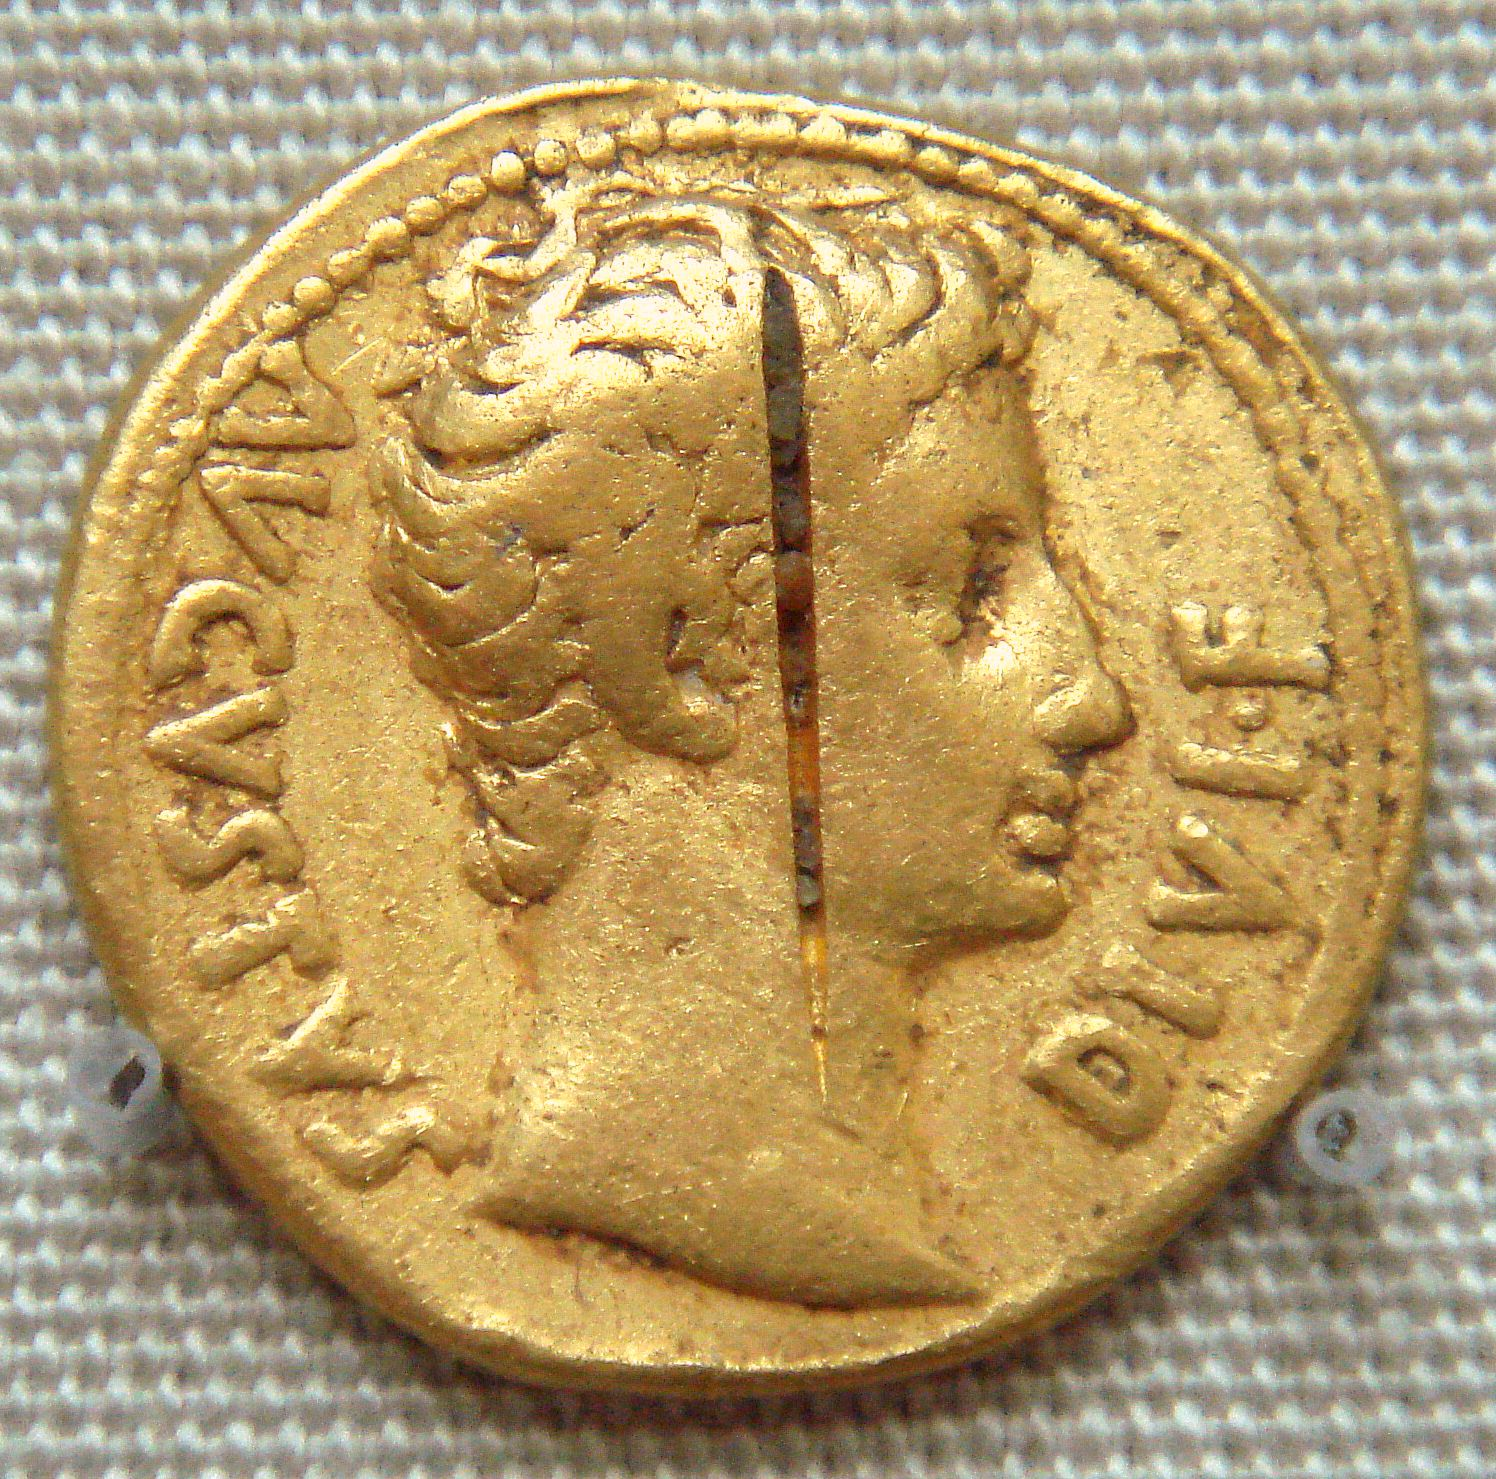 Coin of the Roman emperor Augustus found at the Pudukottai, South India.